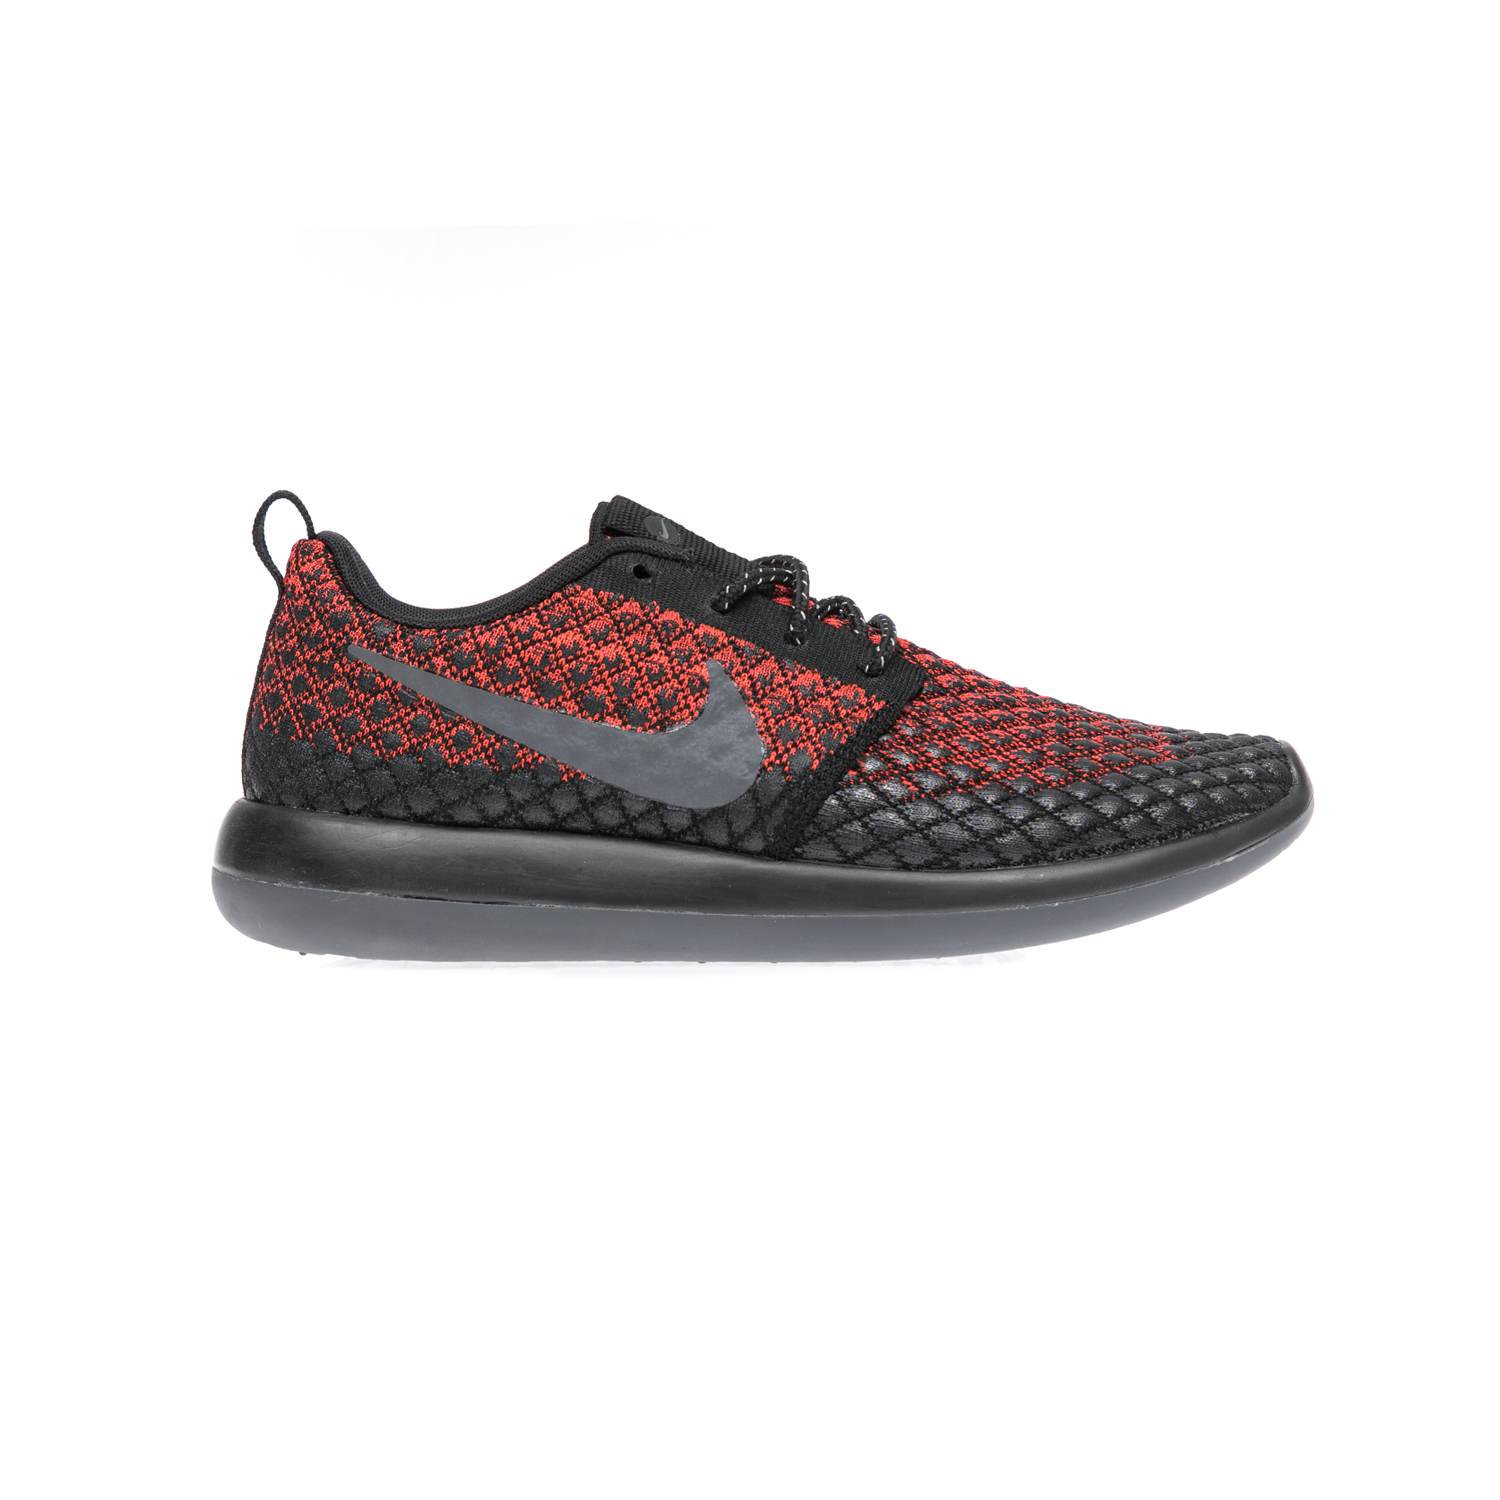 NIKE – Αντρικά παπούτσια NIKE ROSHE TWO FLYKNIT 365 μαύρα-κόκκινα